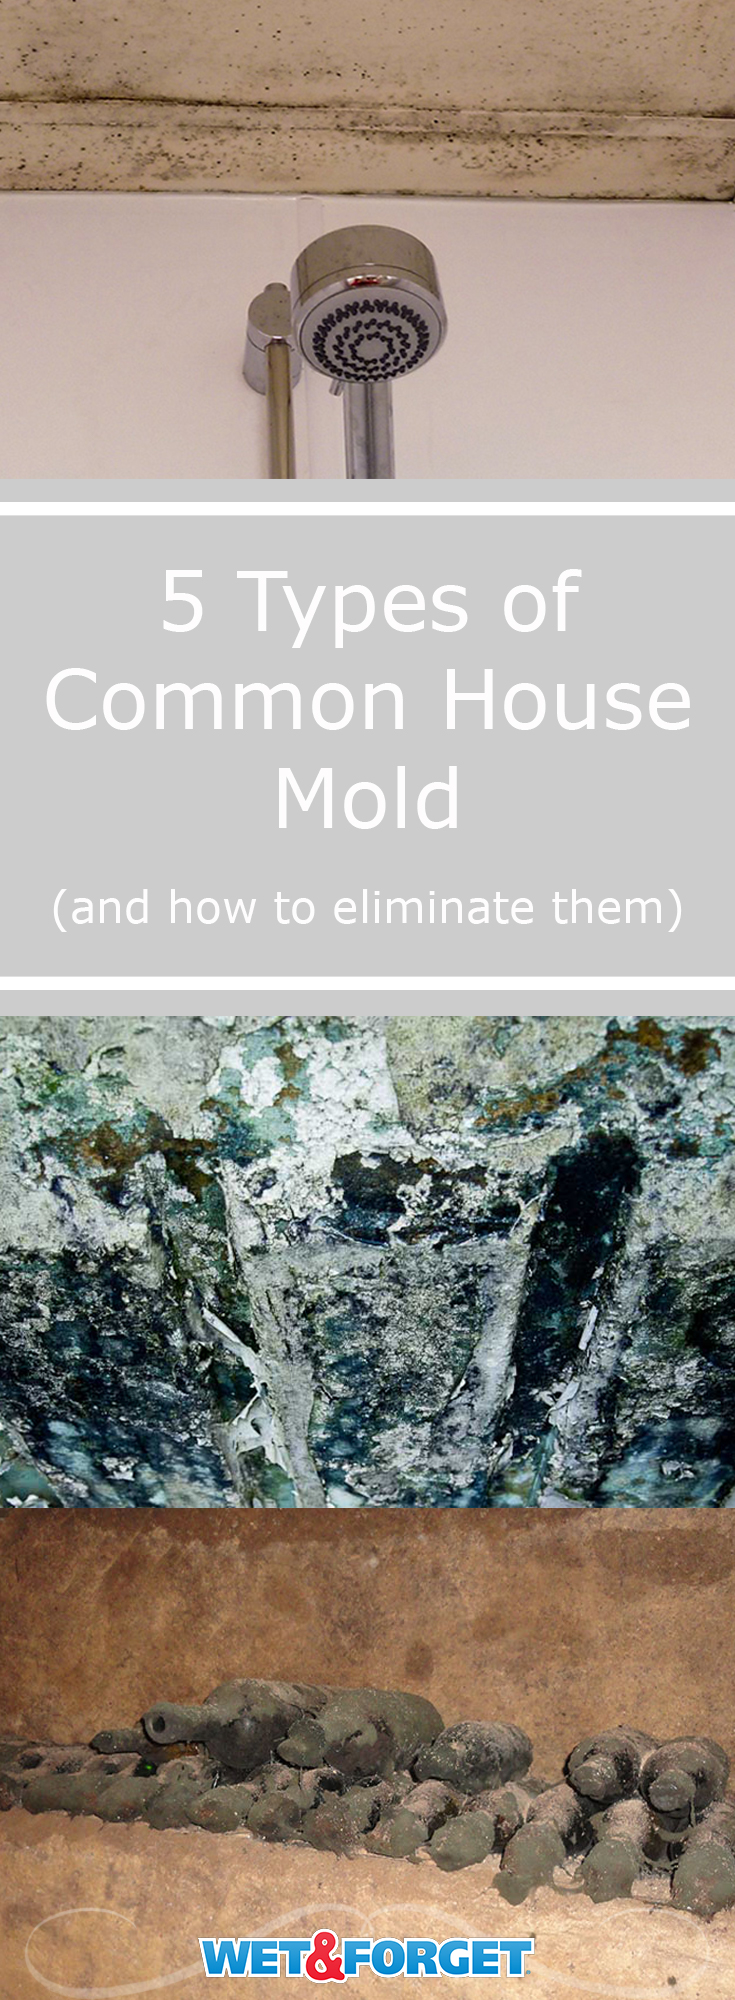 Different types of common house mold